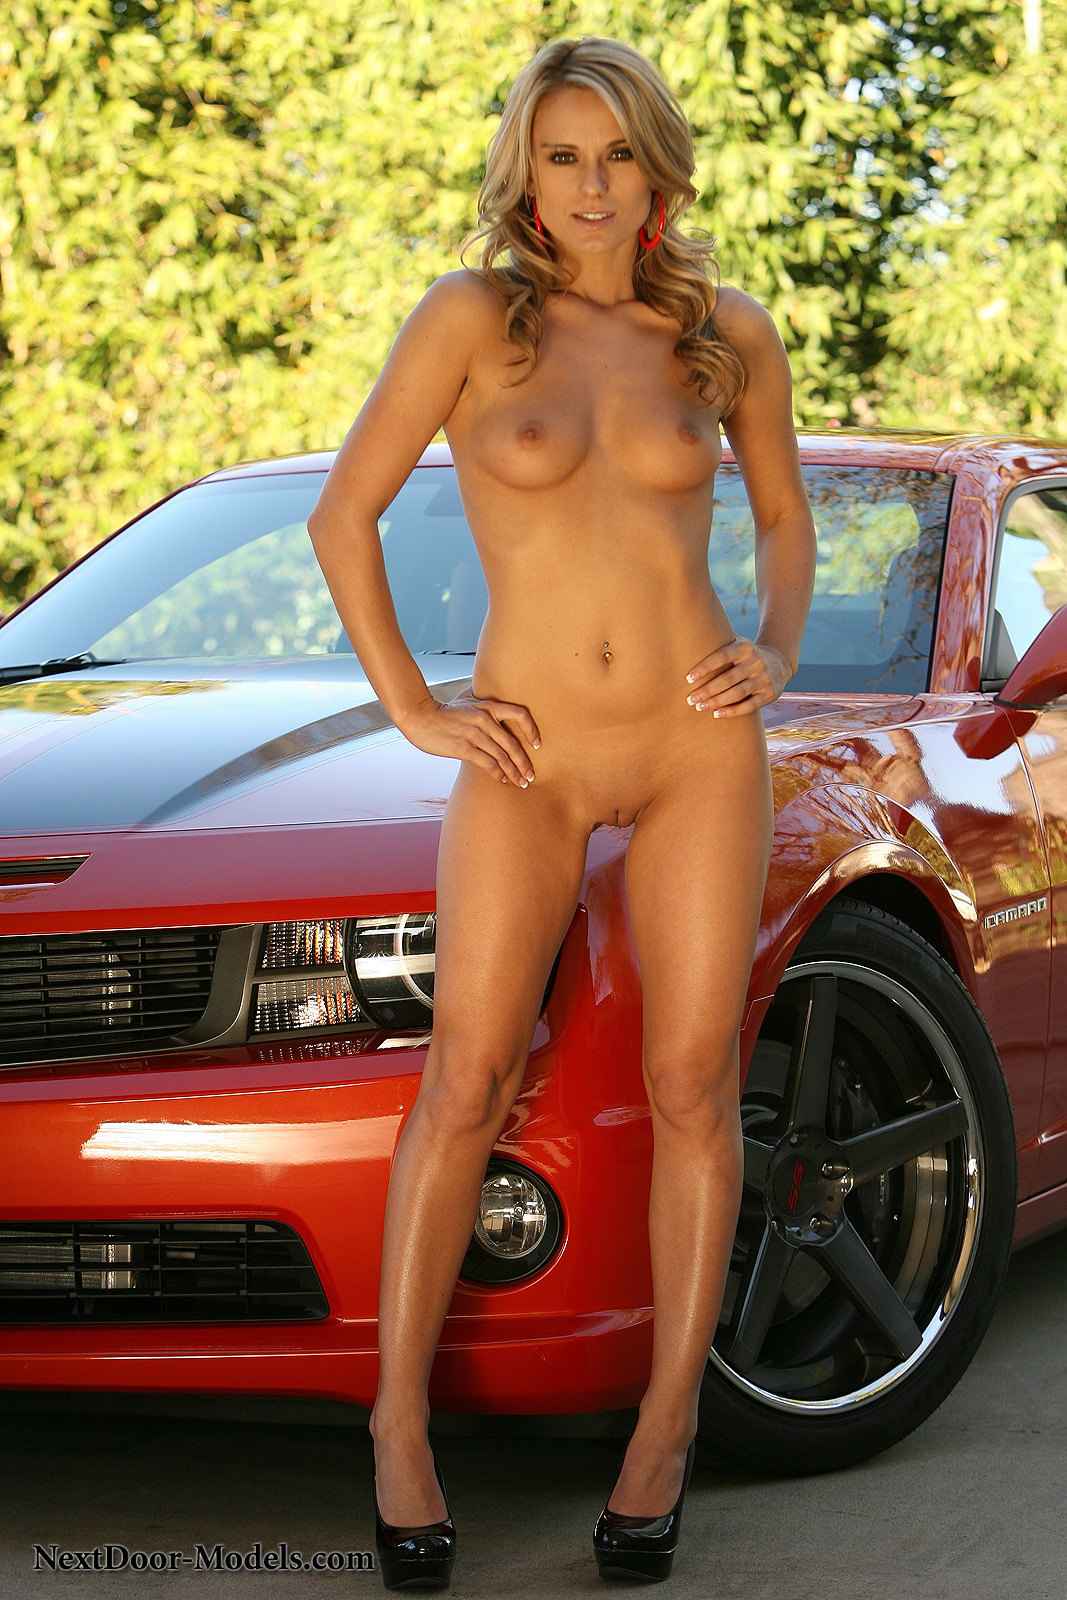 Nude model on car